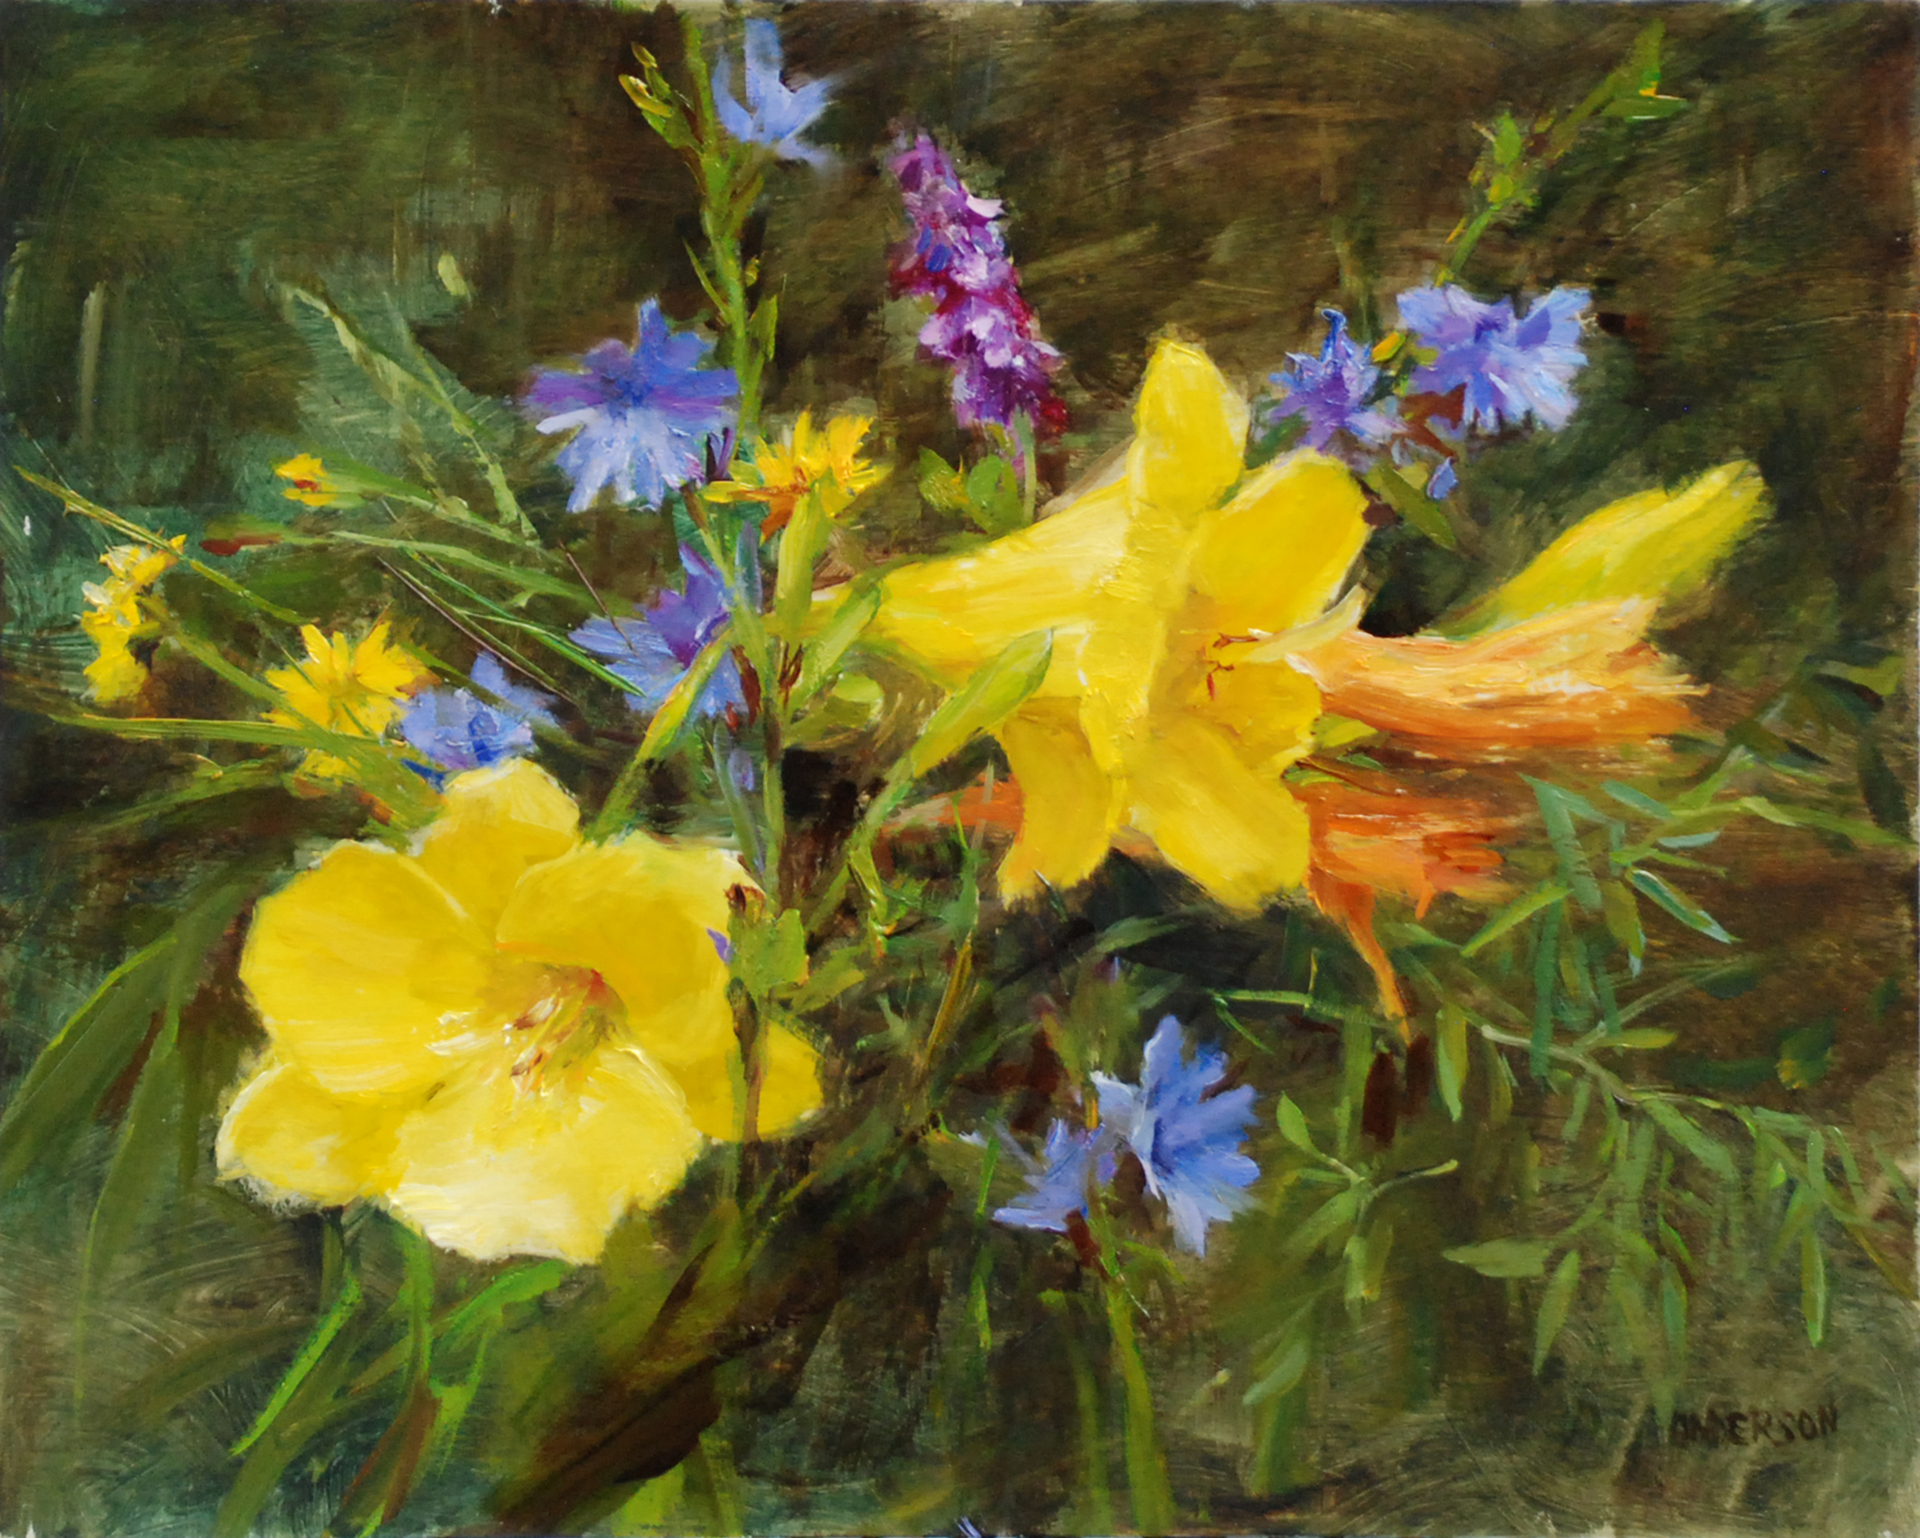 Wildflowers with Lilies by Kathy Anderson